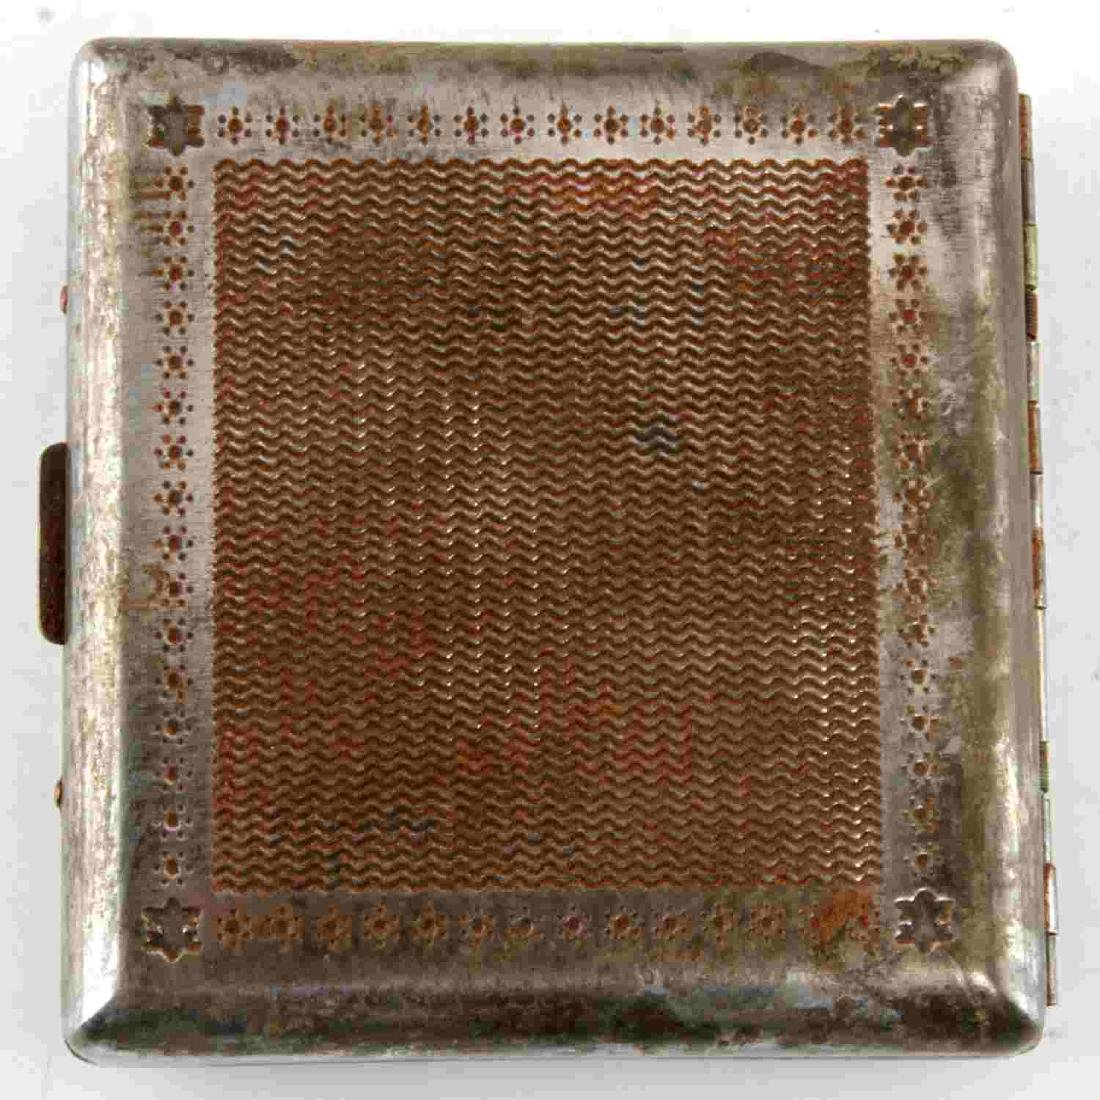 WWII GERMAN LUFTWAFFE IRON CROSS CIGARETTE CASE - 2